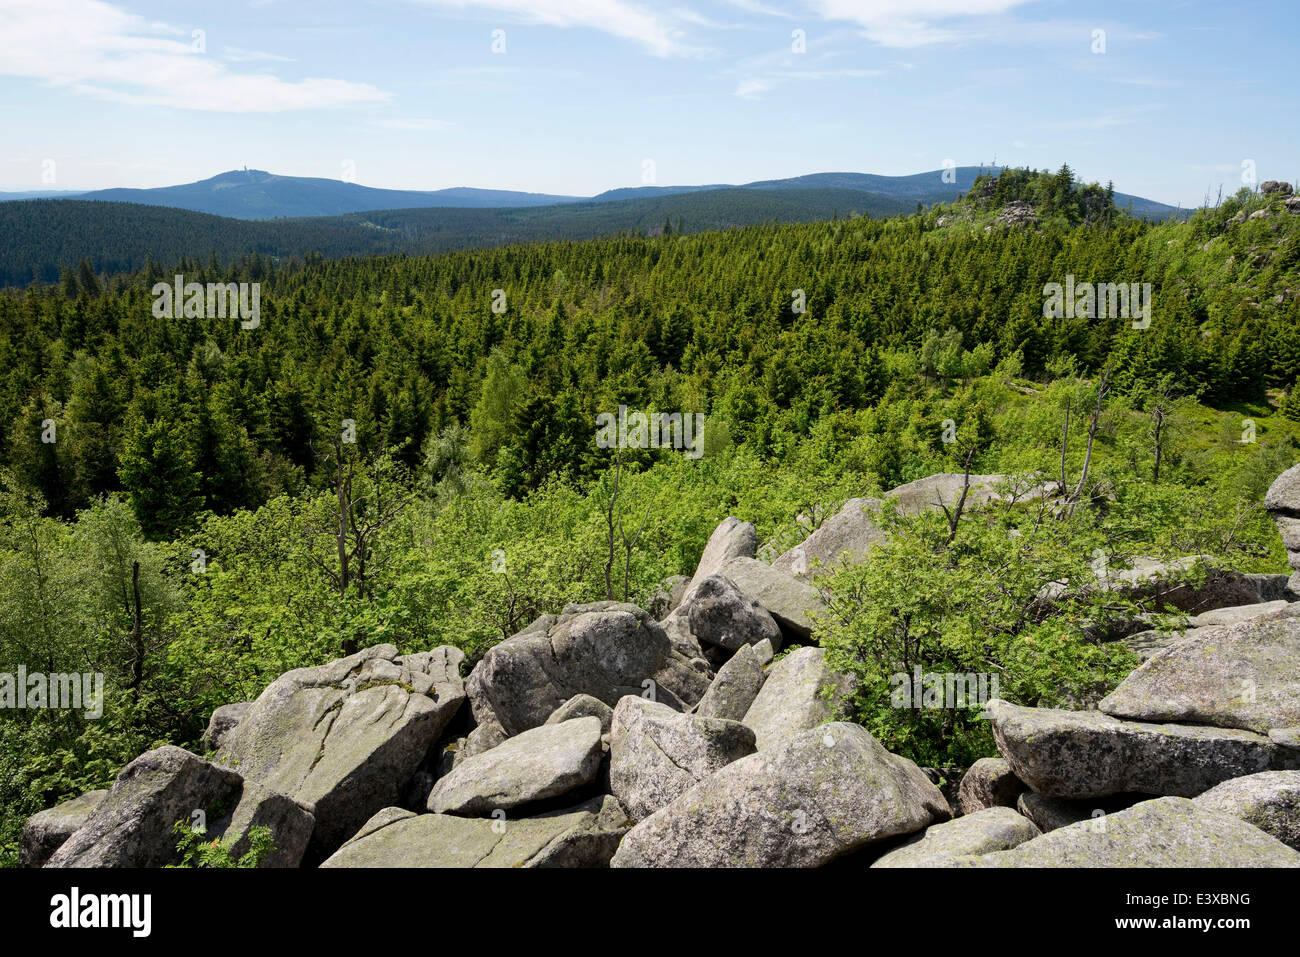 View from Hohnekamm saddle to Mt Wurmberg, left, and Mt Brocken, right, Harz National Park, Saxony-Anhalt, Germany - Stock Image